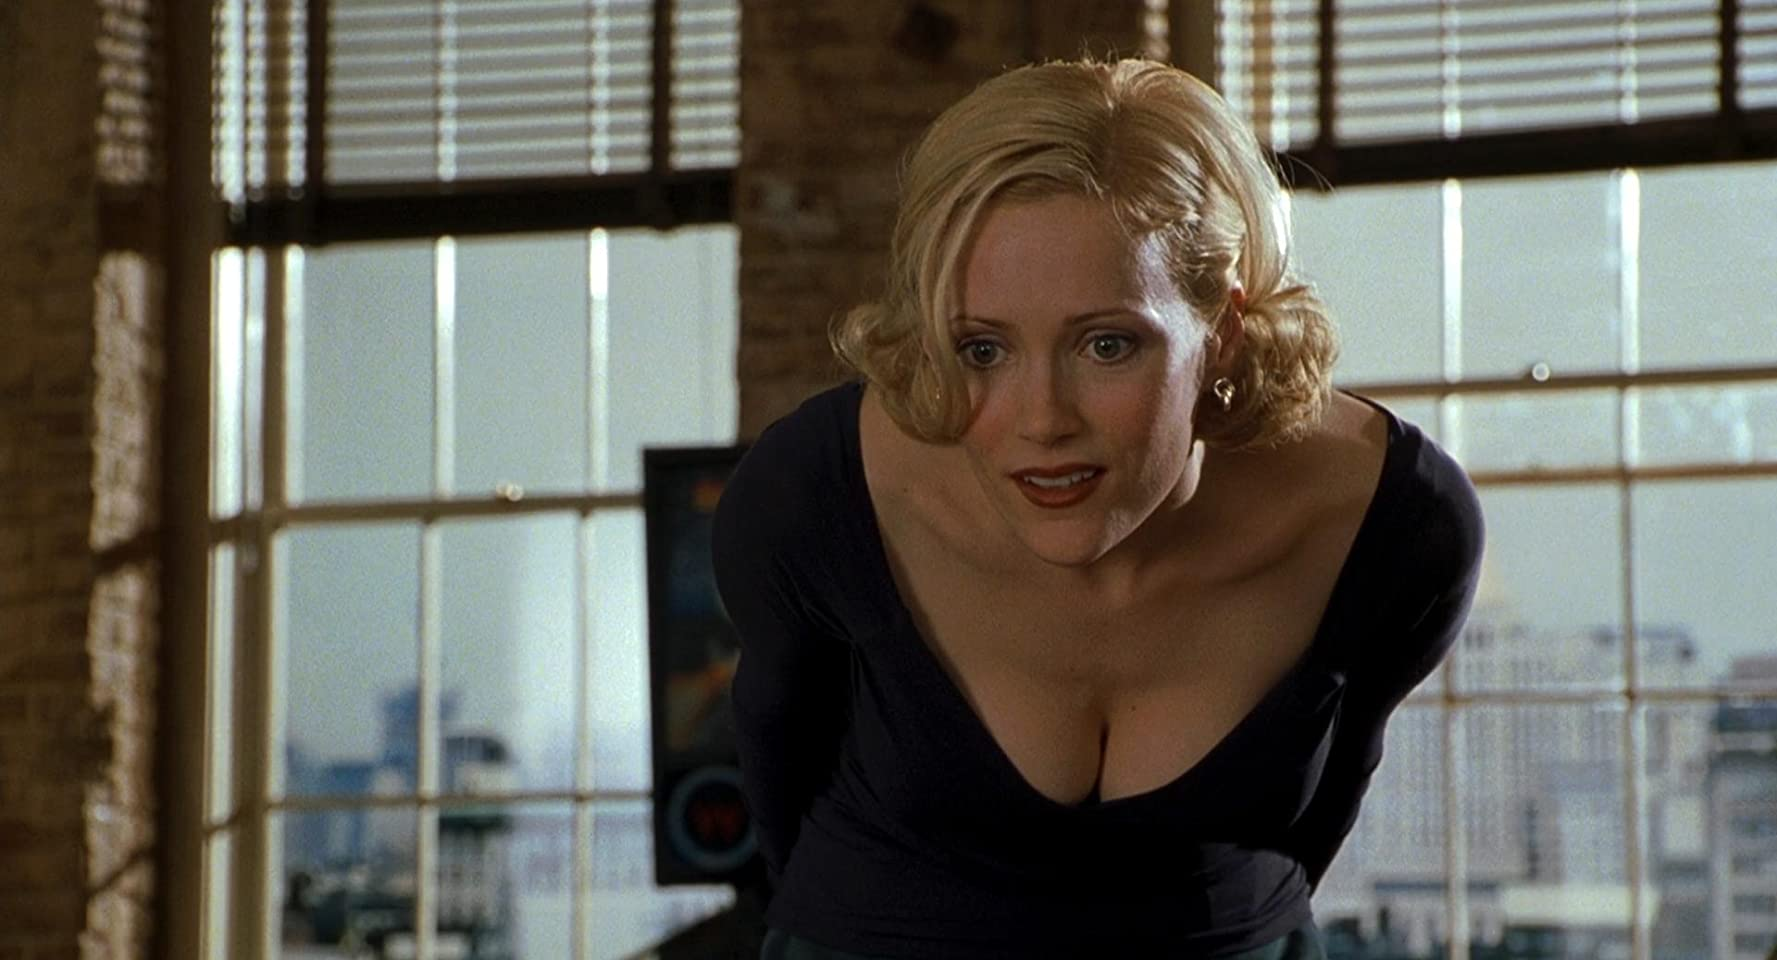 Fotos Leslie Mann naked (85 foto and video), Ass, Leaked, Boobs, underwear 2006